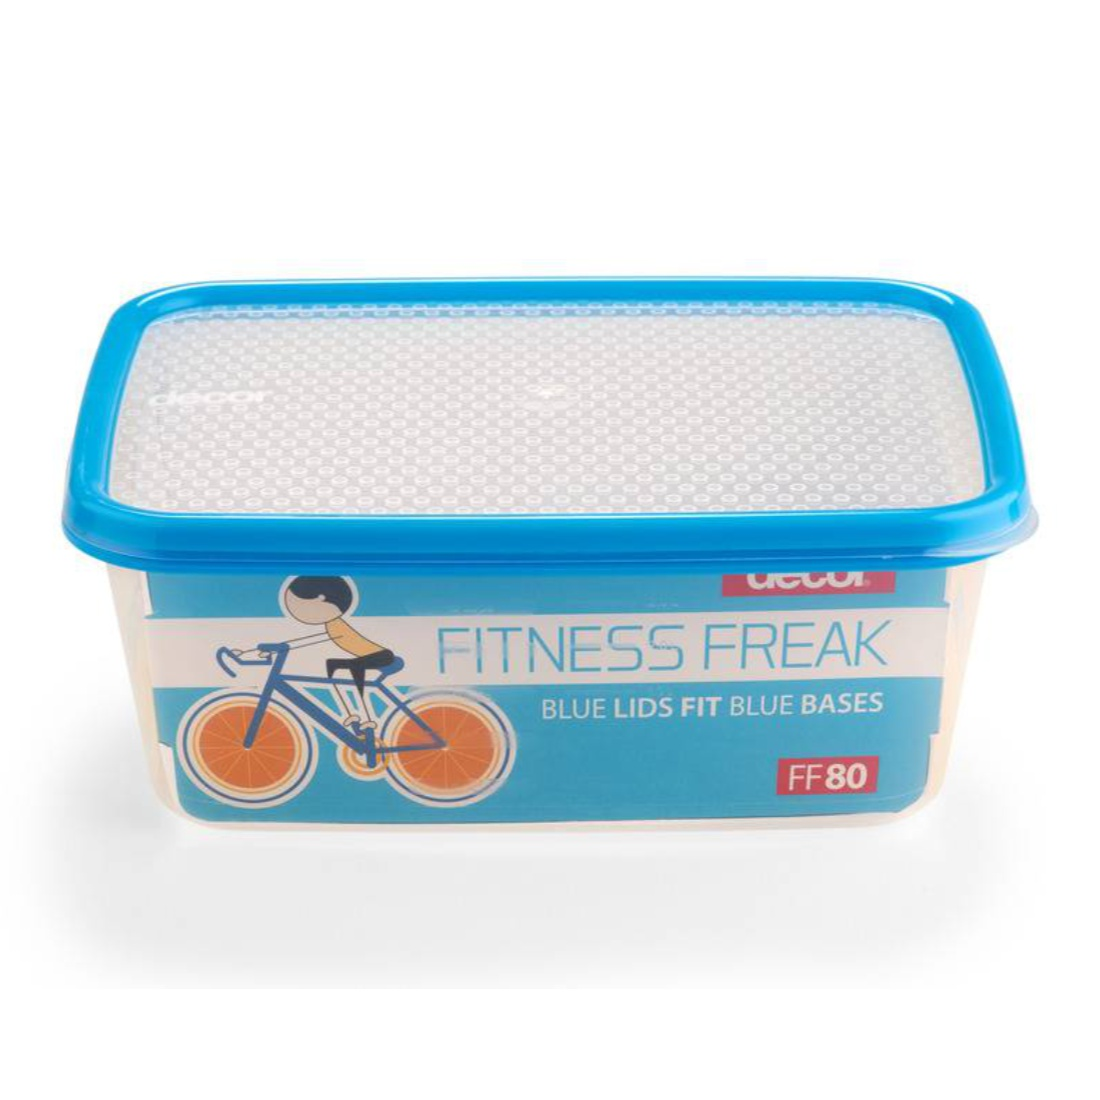 Fitness Freak 80 3.0L Glass Containers by Decor